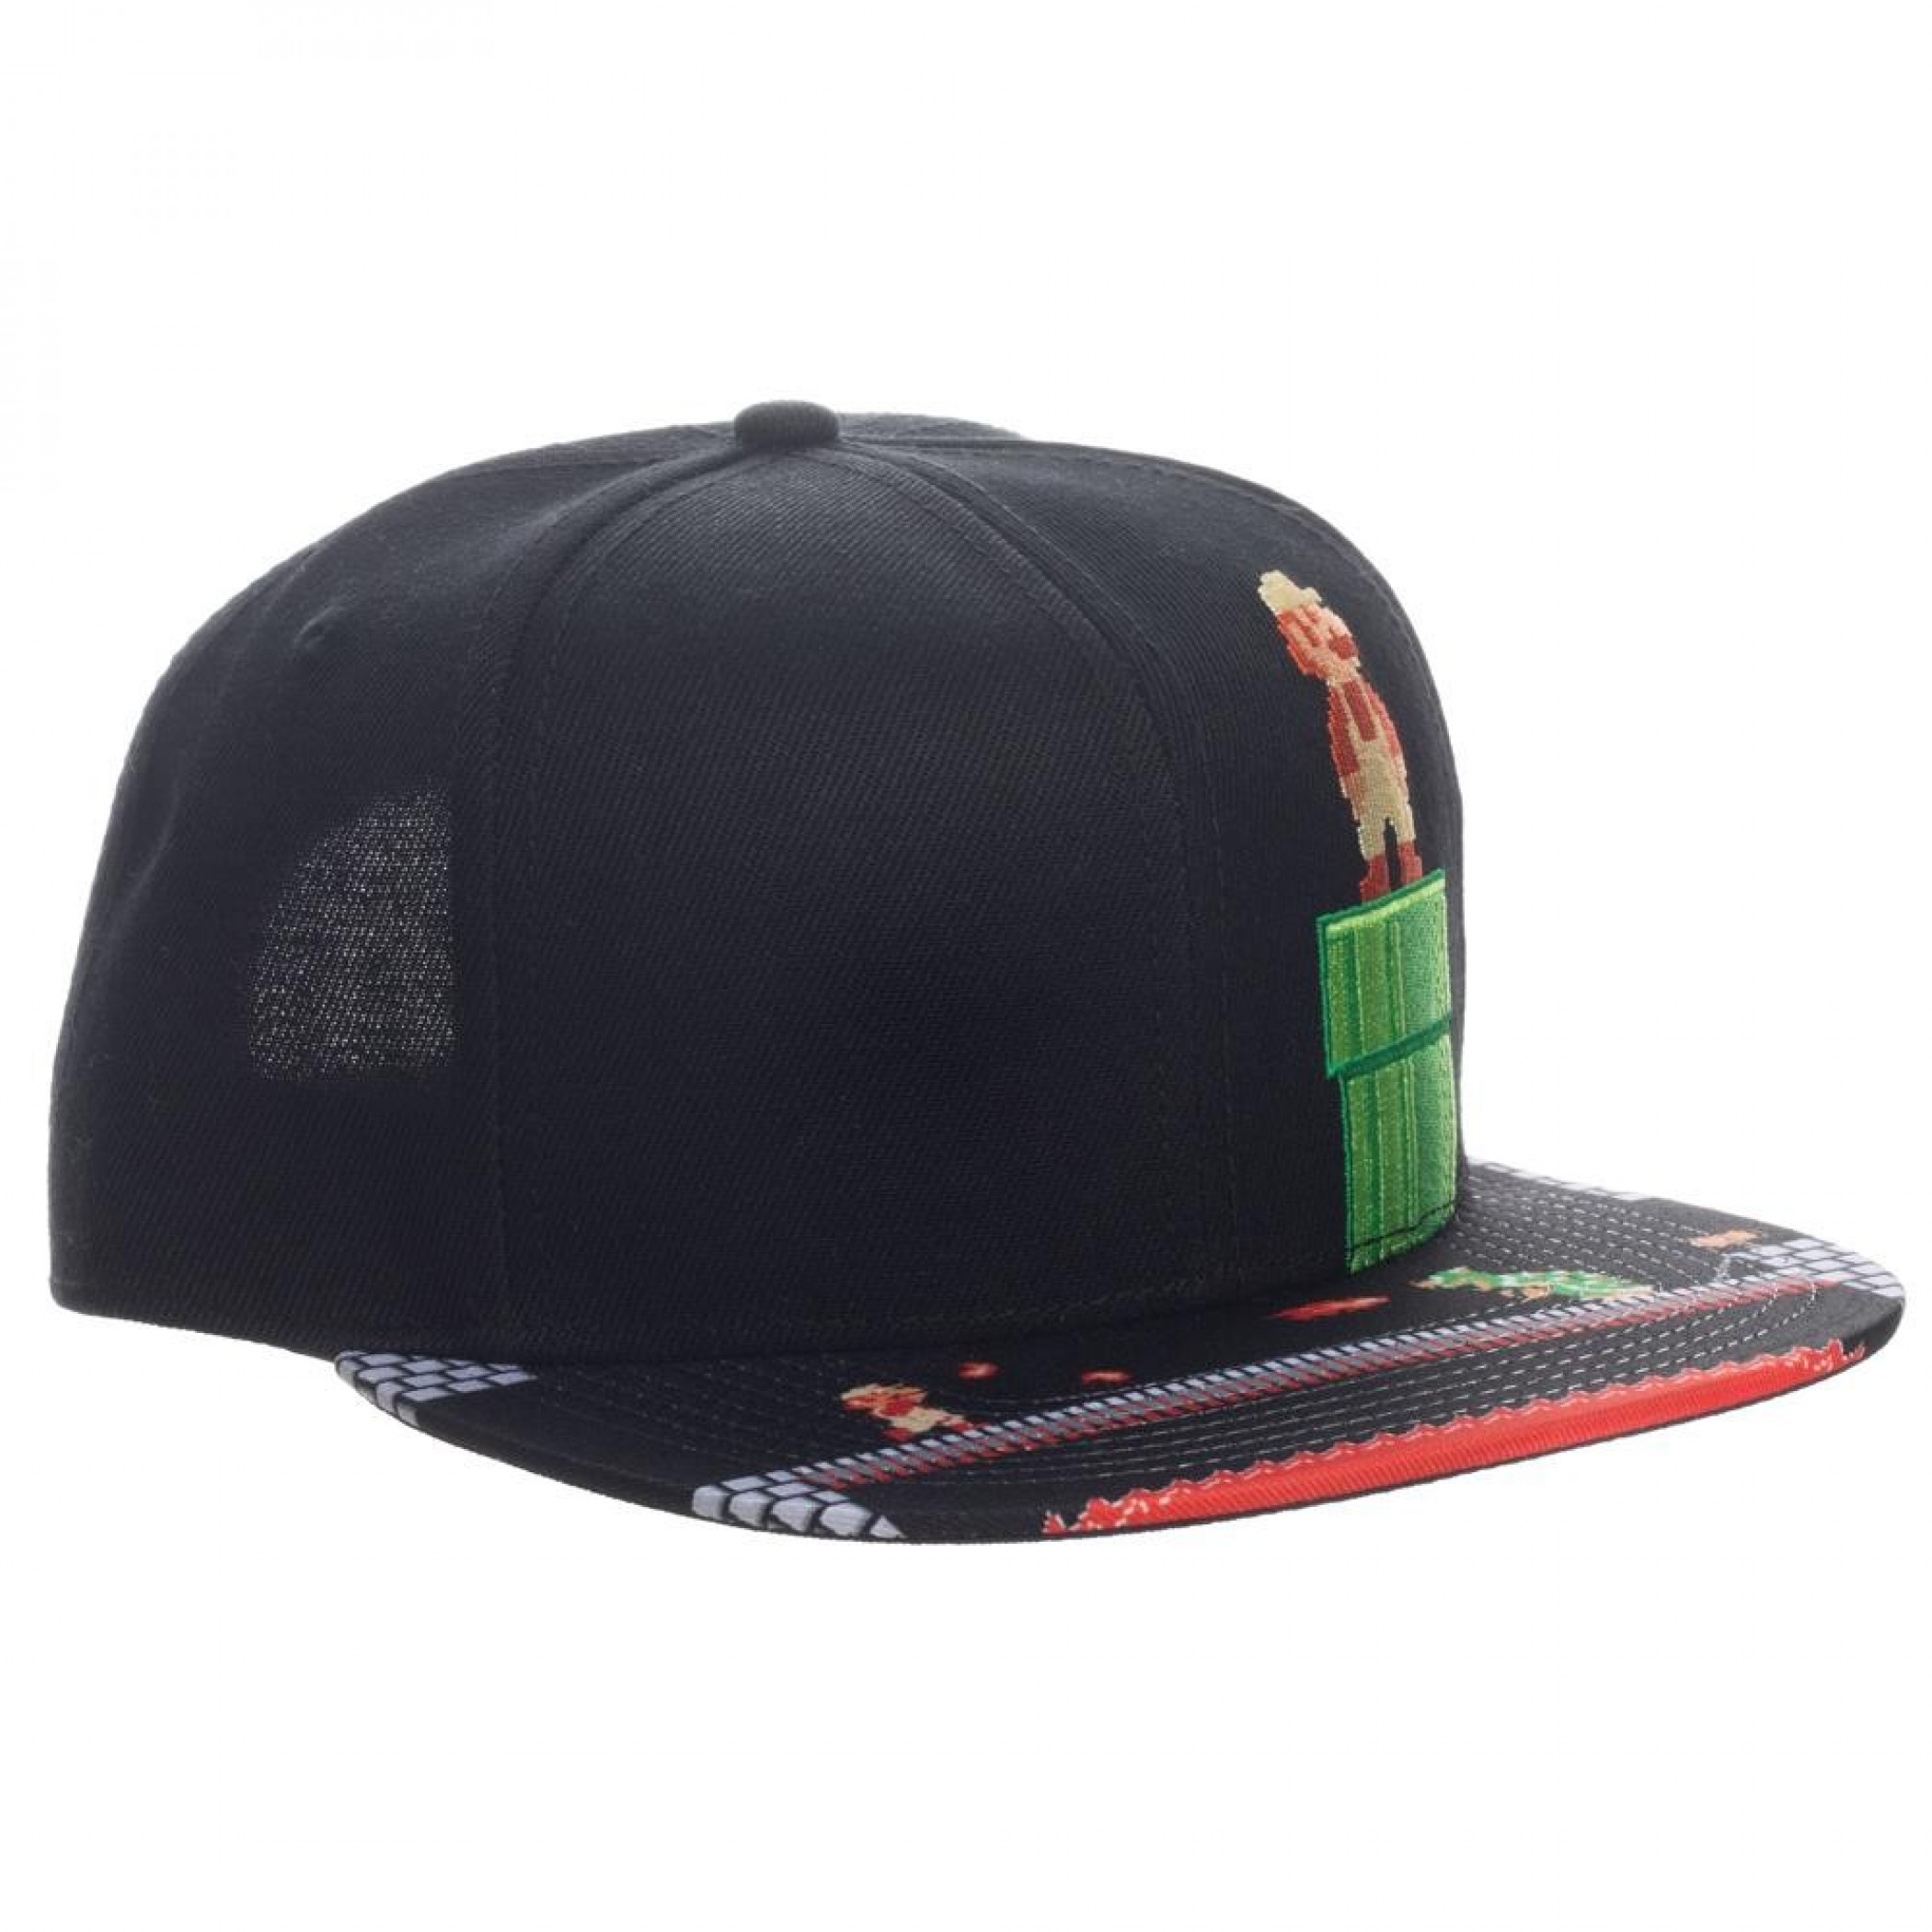 Super Mario 8-Bit Bill Snapback Hat